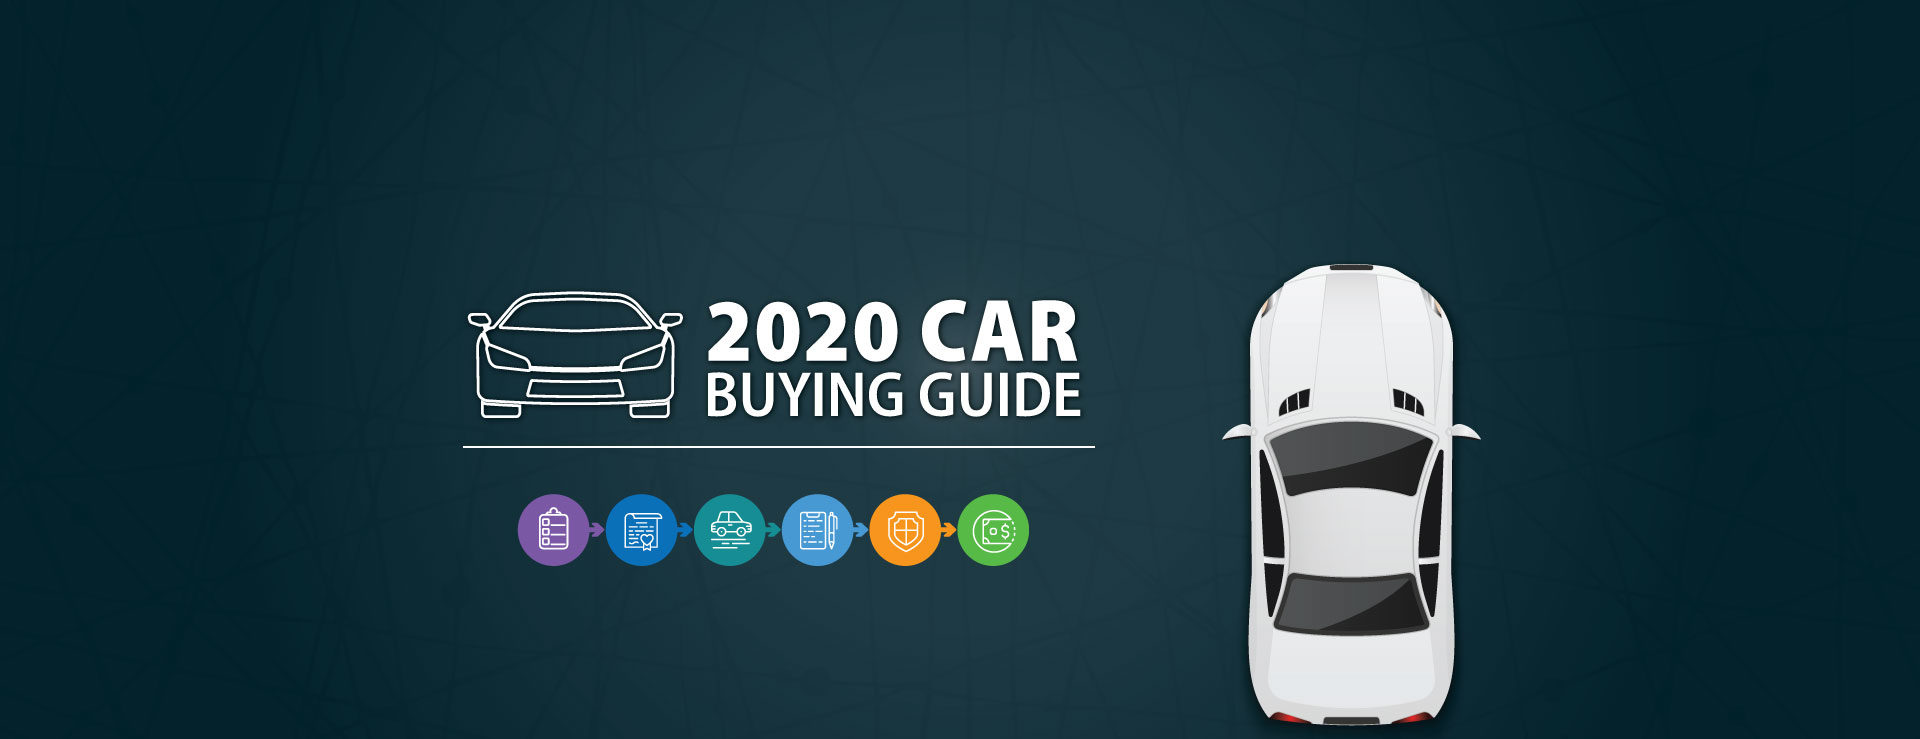 car-buying-guide-web